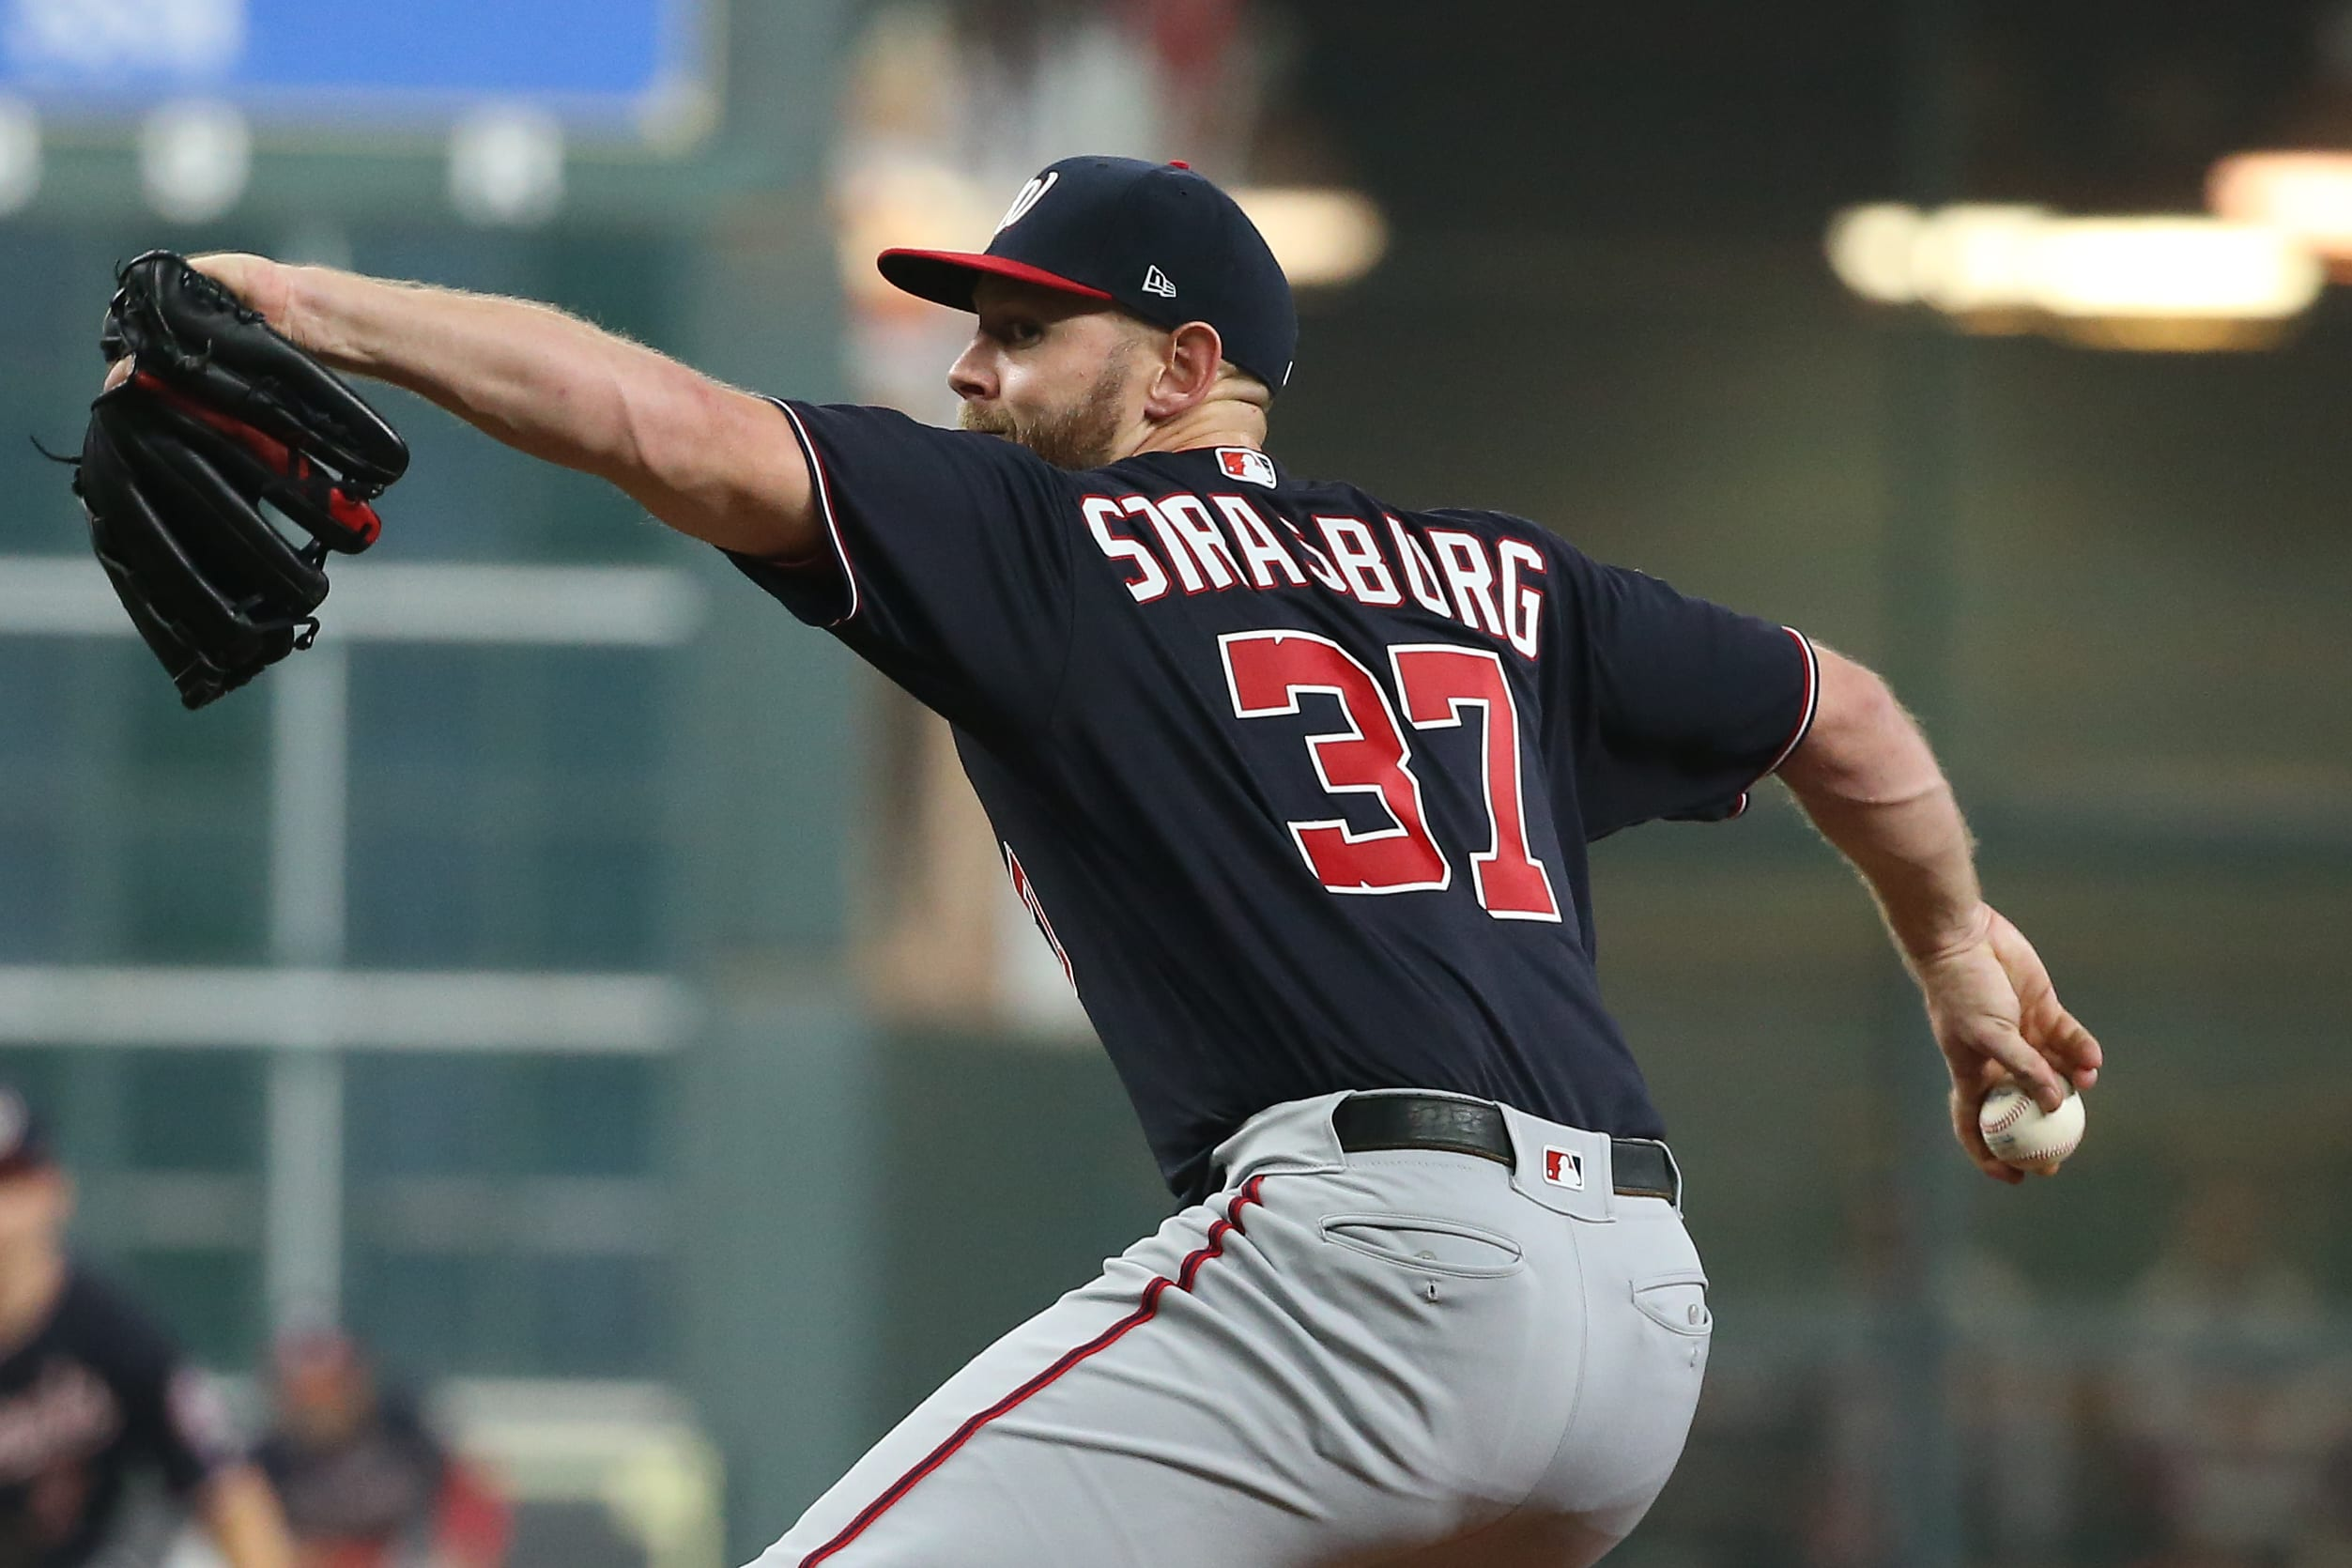 Could the New York Yankees pursue Stephen Strasburg this offseason?